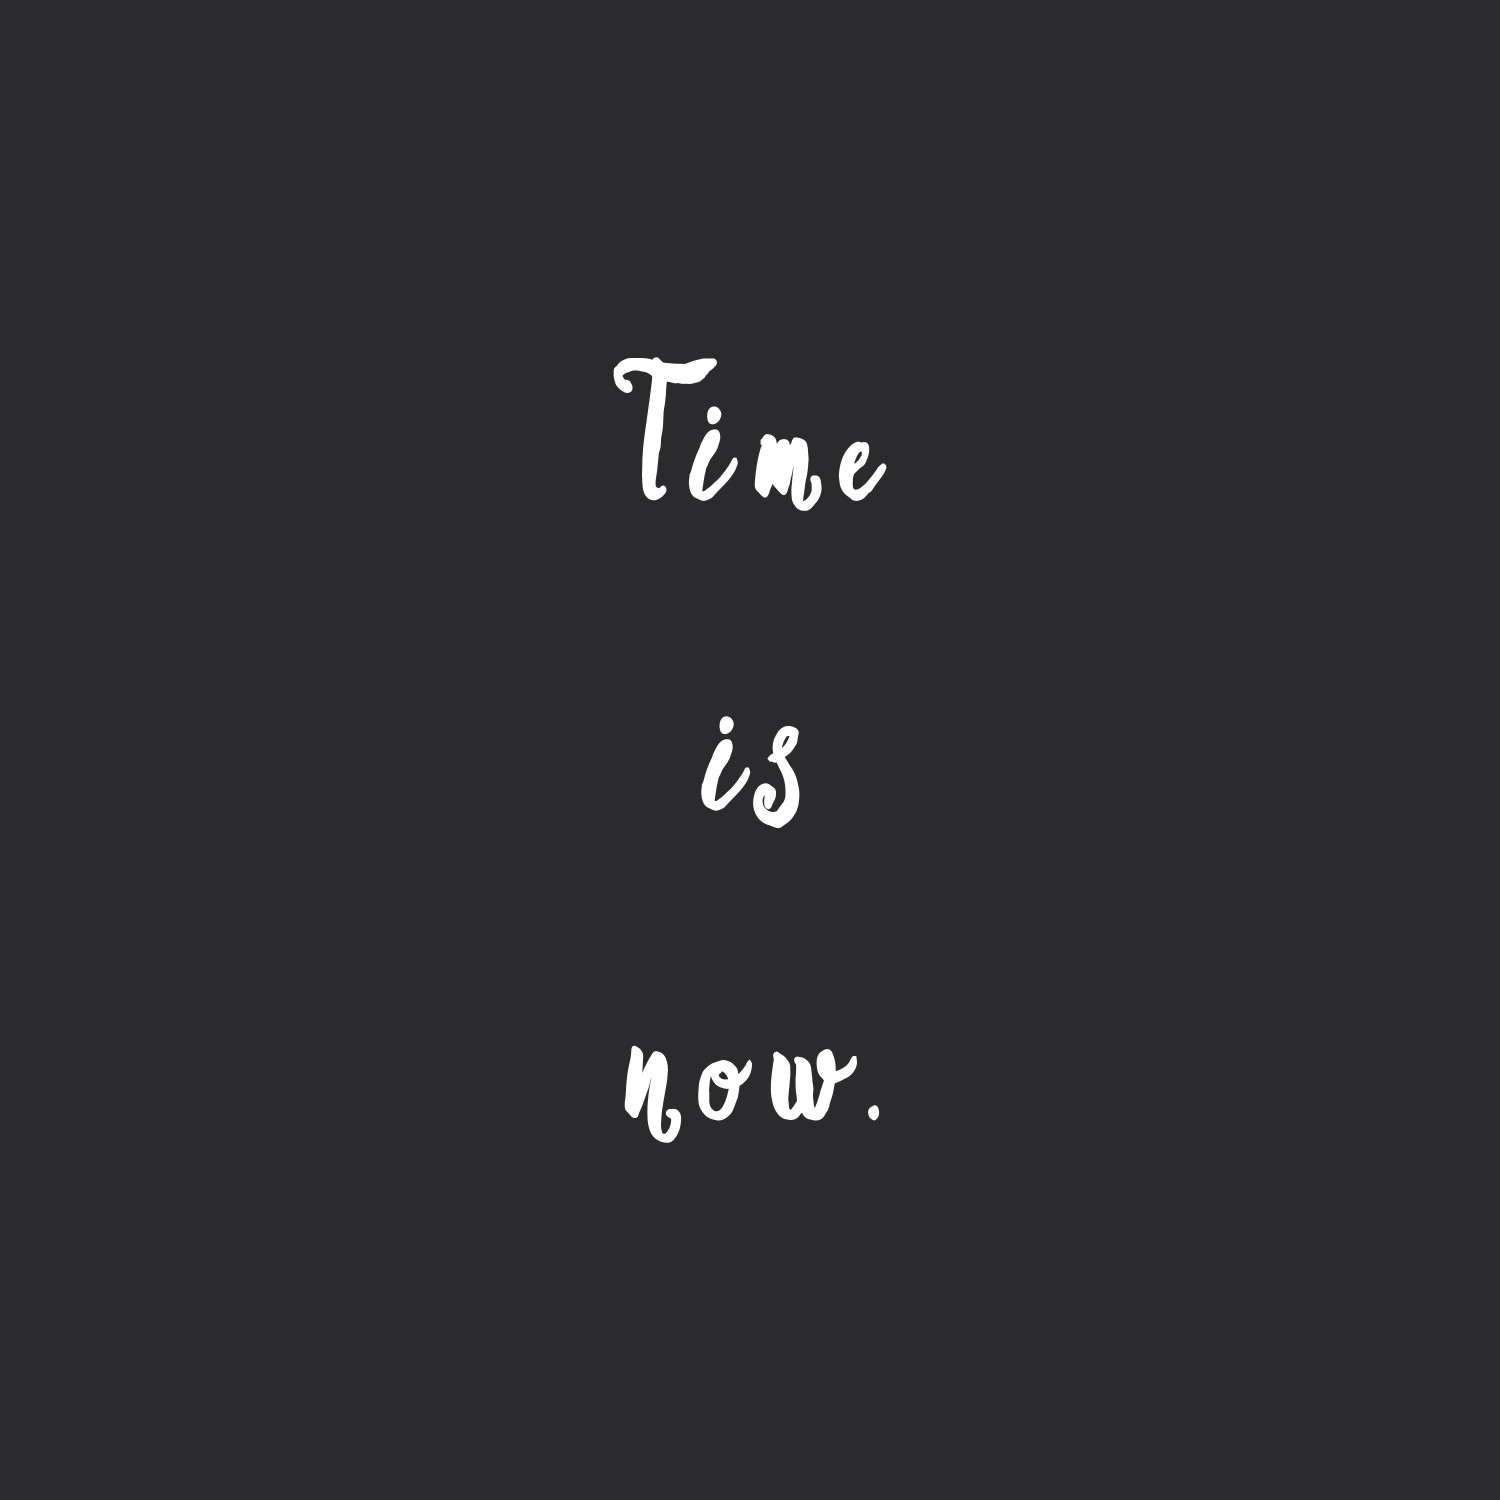 Time is now! Browse our collection of motivational health and fitness quotes and get instant exercise and healthy eating inspiration. Stay focused and get fit, healthy and happy! https://www.spotebi.com/workout-motivation/time-is-now/